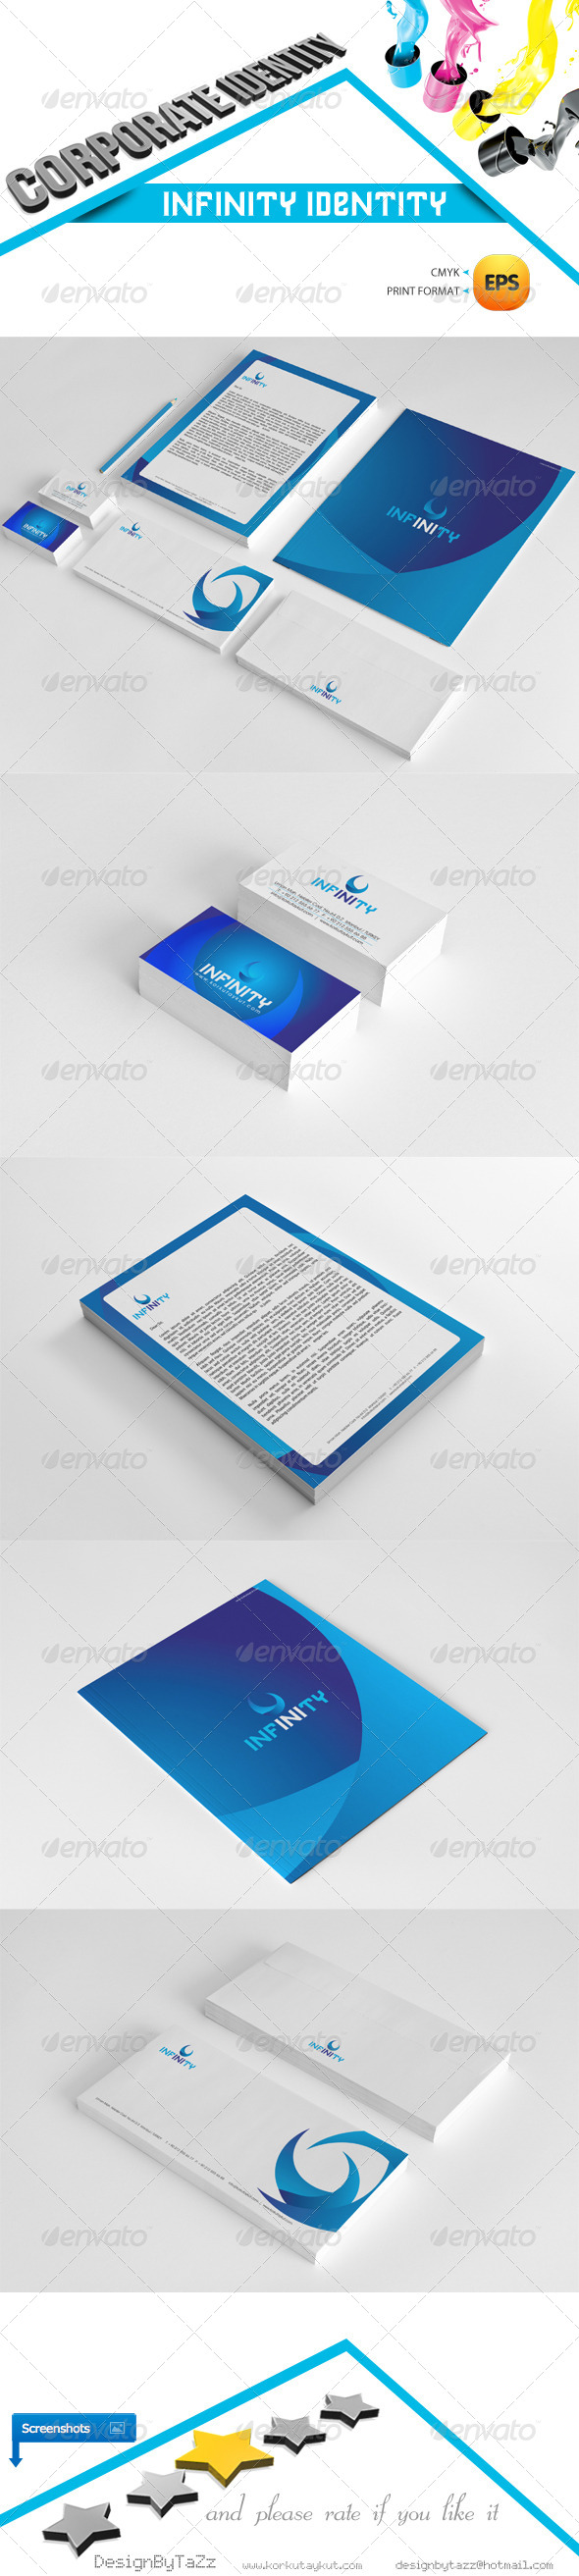 GraphicRiver Infinity Corporate Identity Package 5286217